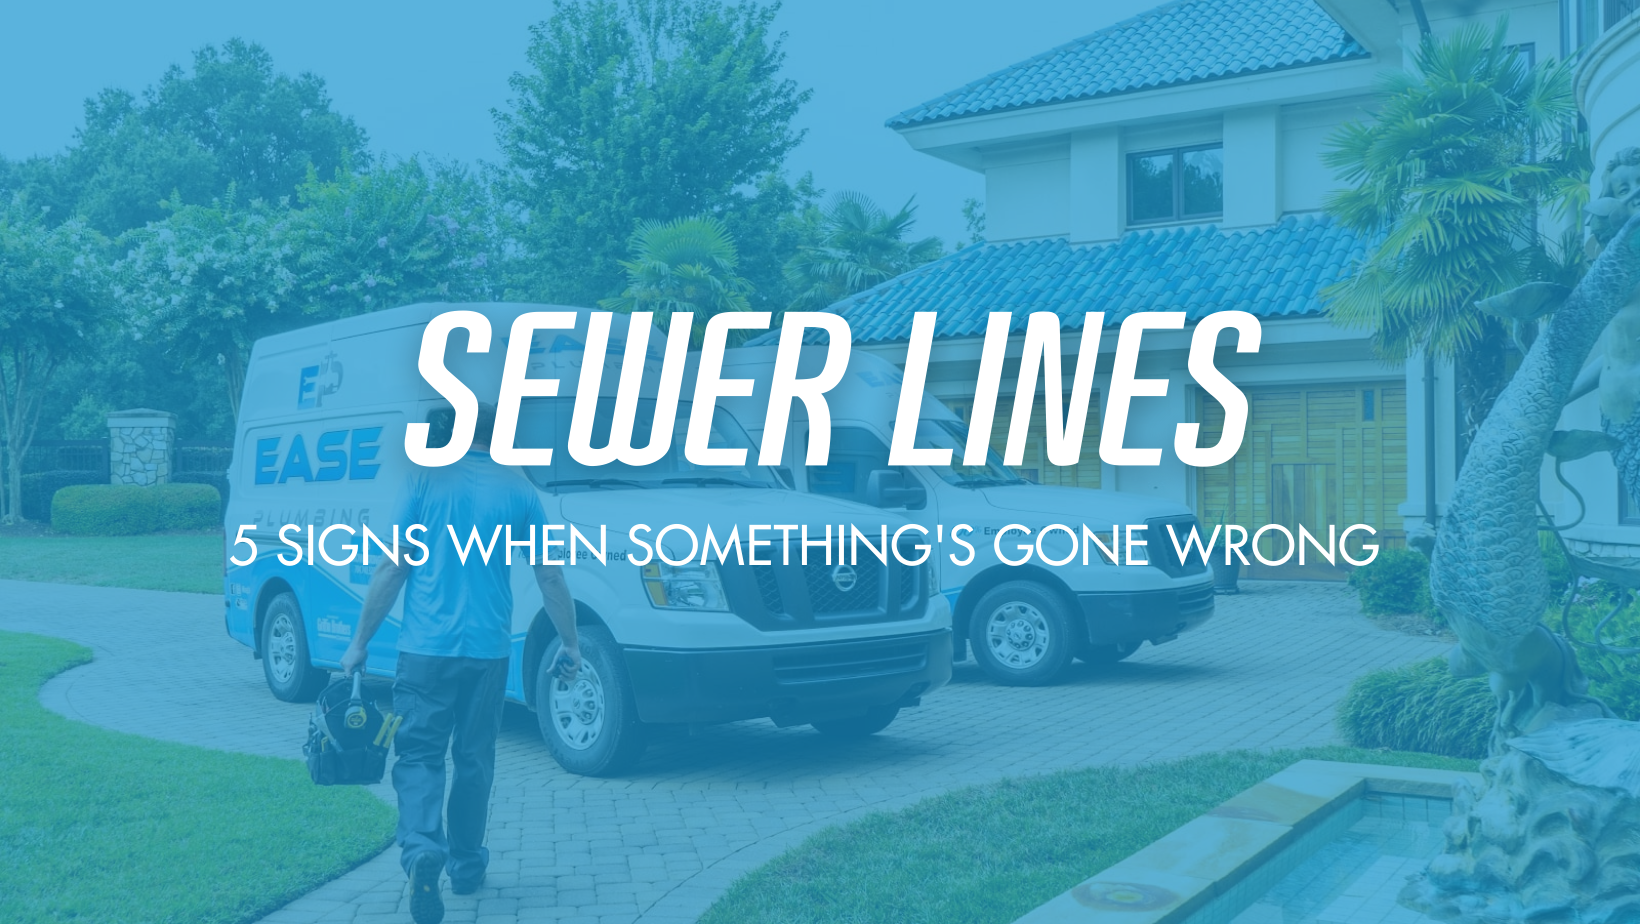 5 Warning Signs For When You Need a Sewer Line Inspection from the team at Ease Plumbing